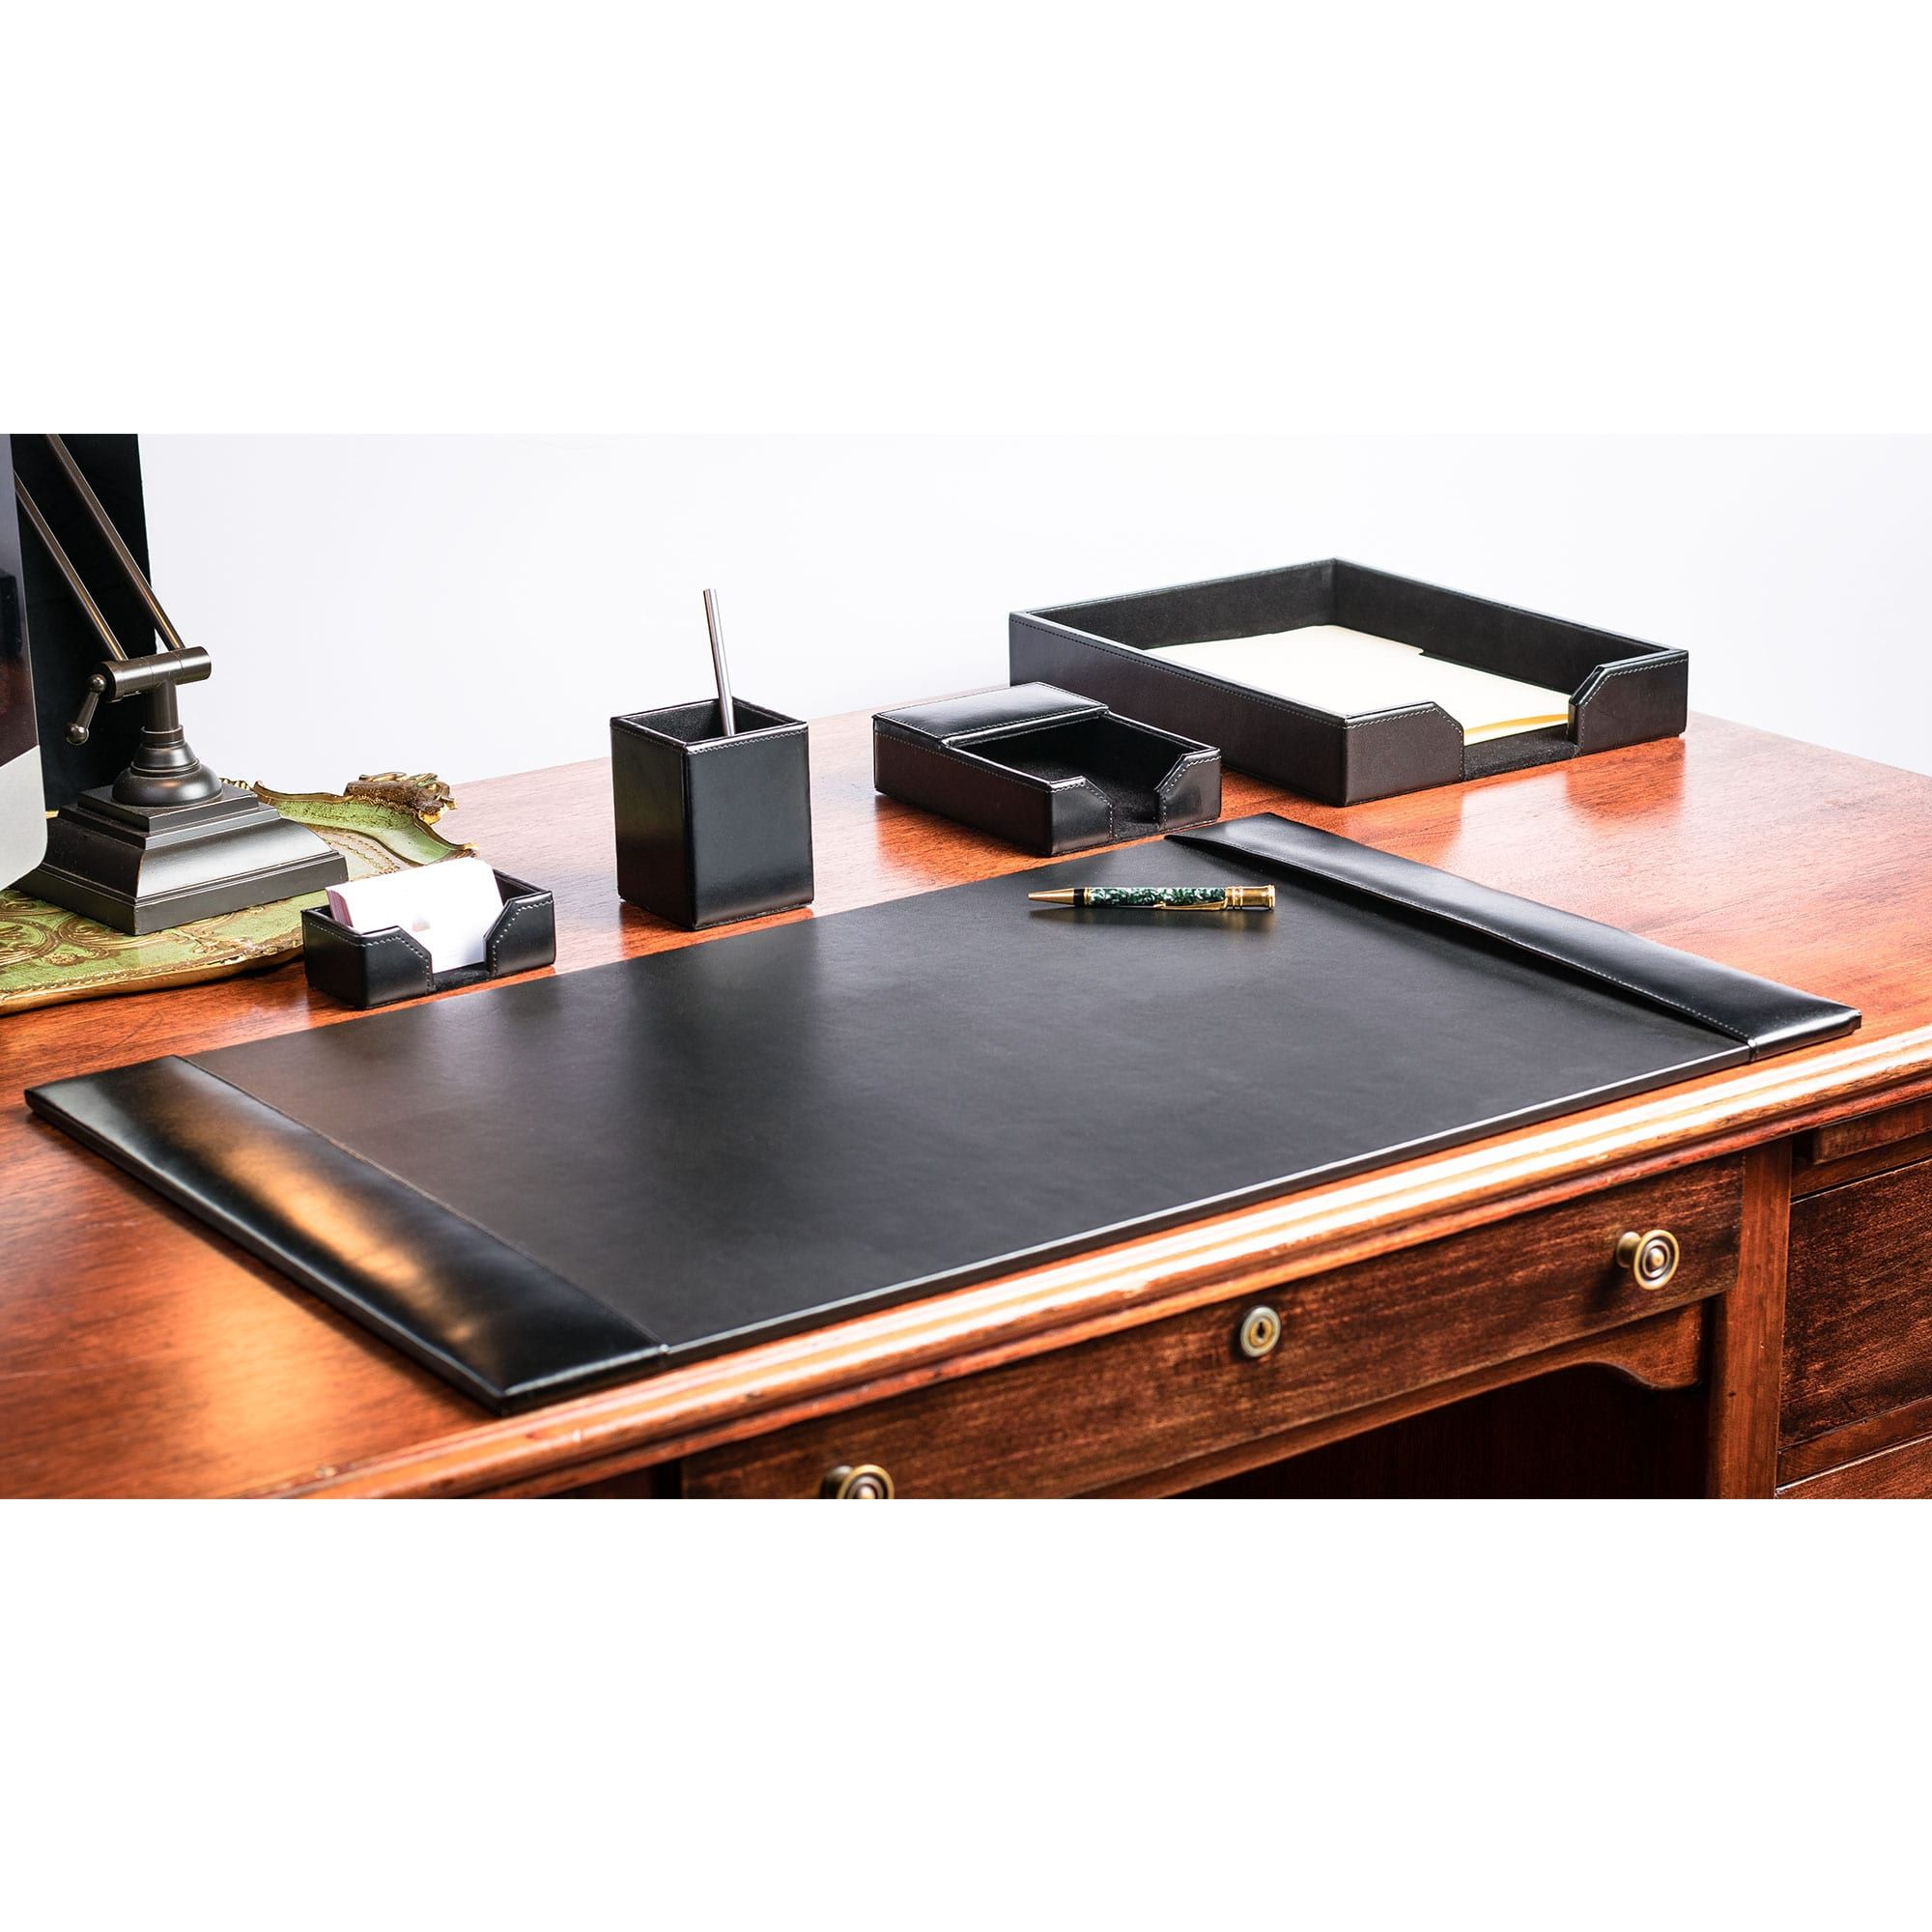 Stuck At Home Make Your Home Office Your Workplace With These Leather Desk Accessories Designed To In 2020 Leather Desk Leather Desk Accessories Desk Accessory Design